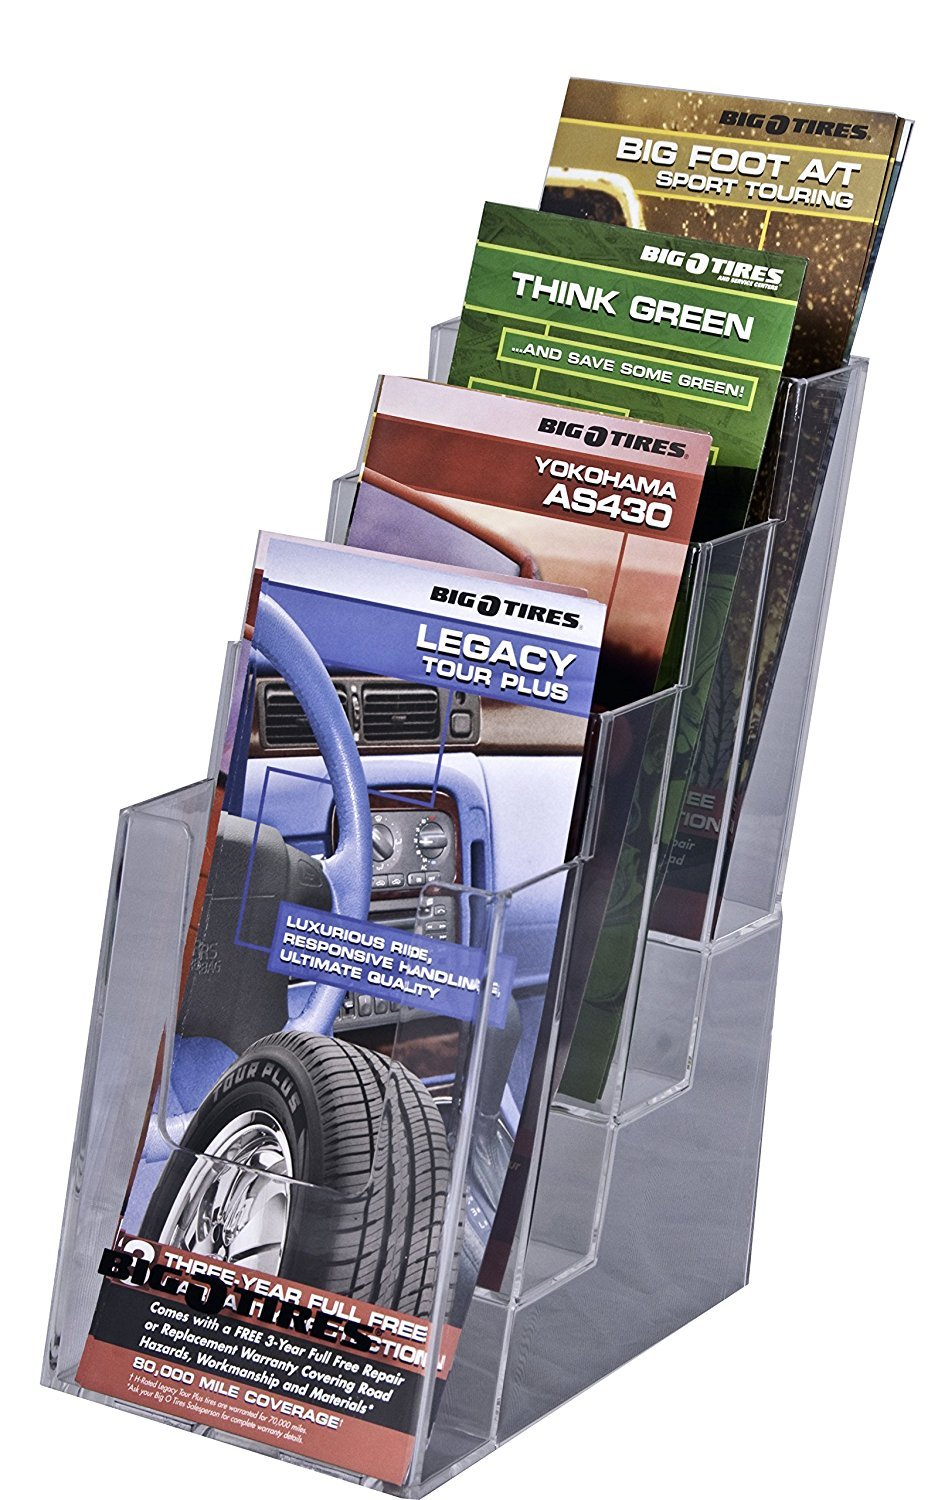 Clear-Ad - LHF-S104 - Acrylic Slant Back 4 Tier Trifold Brochure Display - Plastic Literature Holder for Flyers, Booklets, Bills, Mail, Letters, Cards, Pamphlets, Maps (Pack of 4)